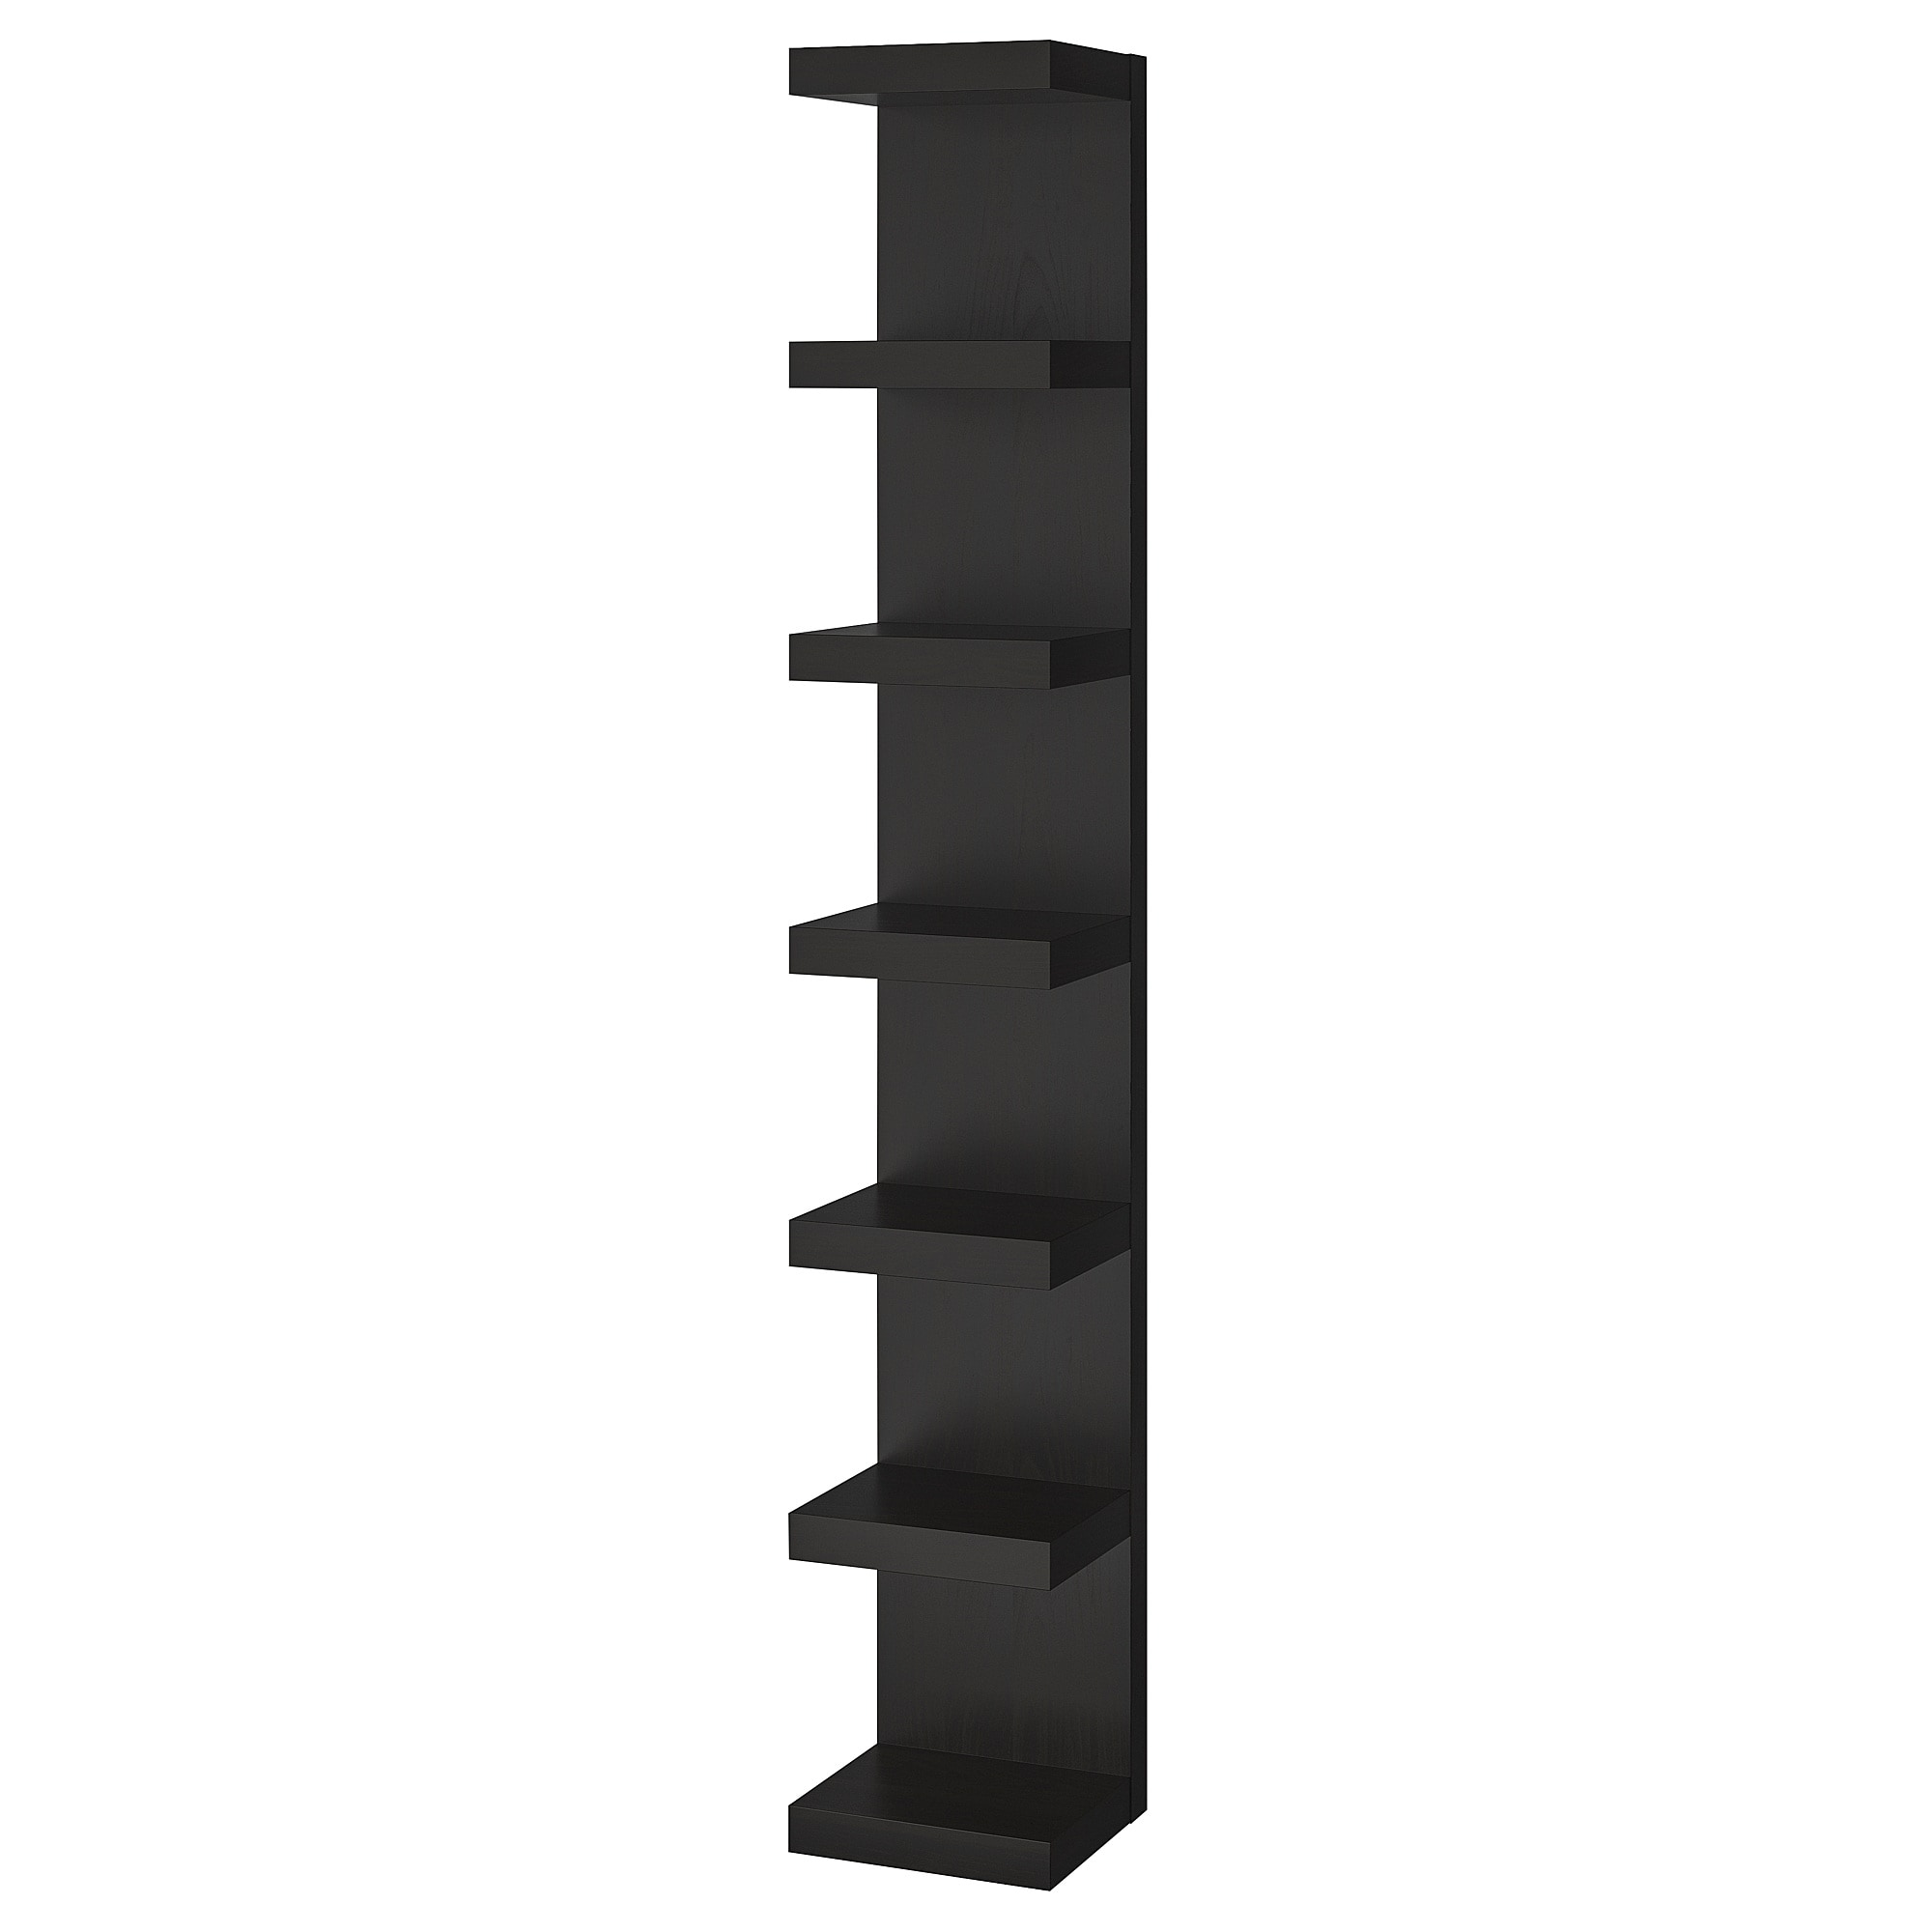 lack wall shelf unit white ikea black floating inexpensive storage shelving corner mount media kitchen organizer cart inch bunnings shower screens decorative things for shelves